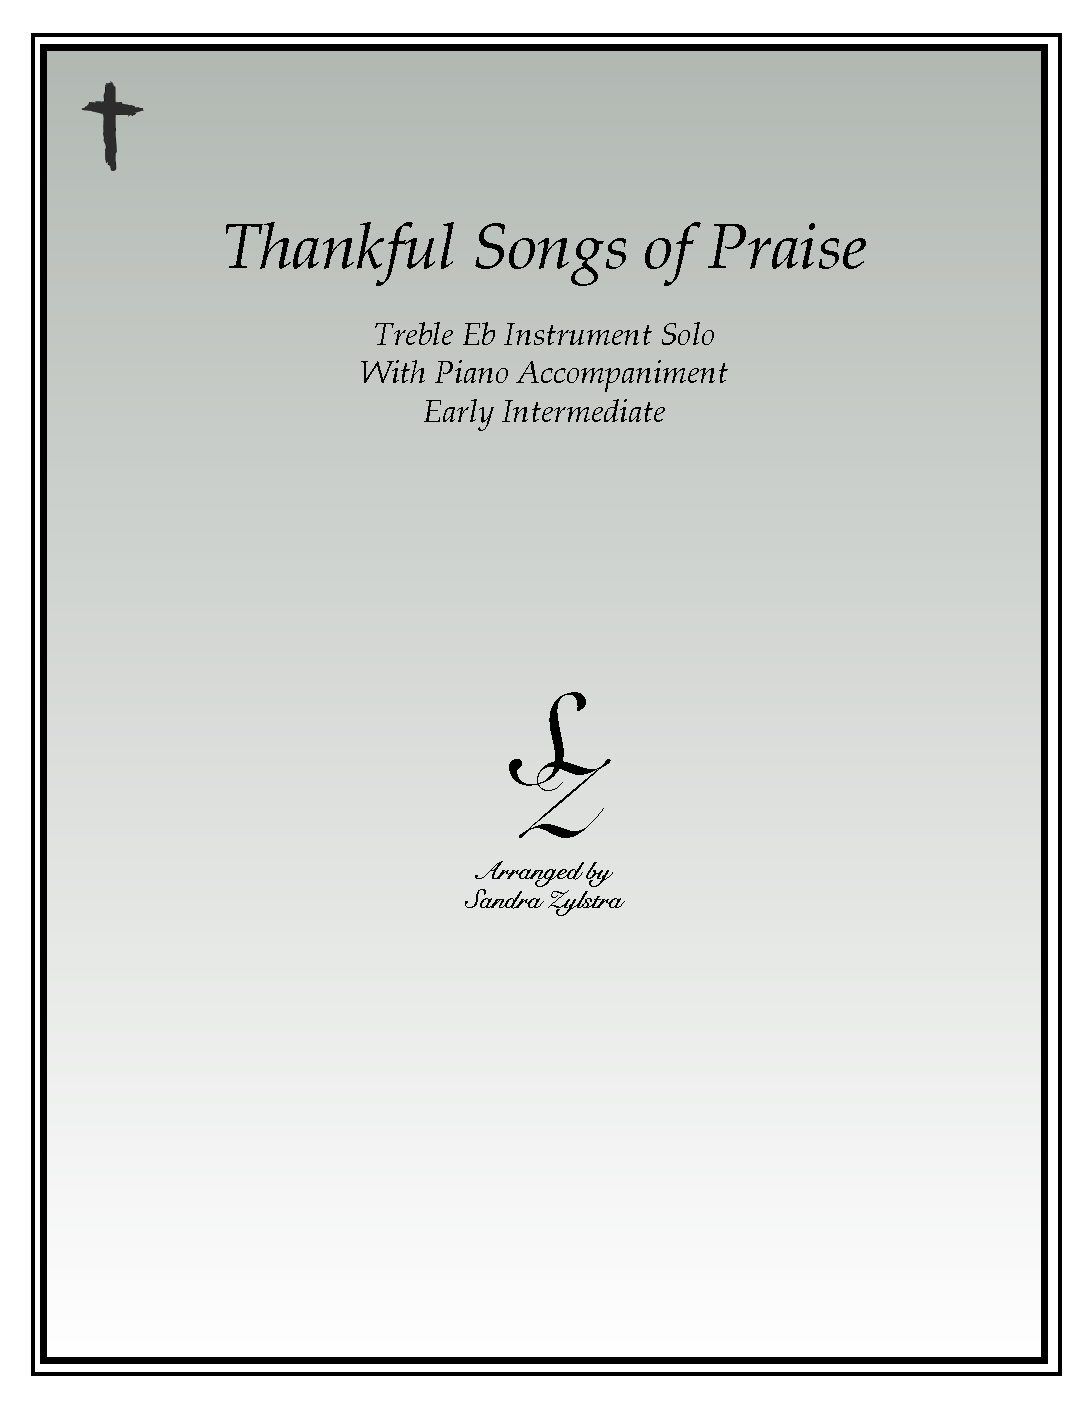 Thankful Songs Of Praise -Treble Eb Instrument Solo